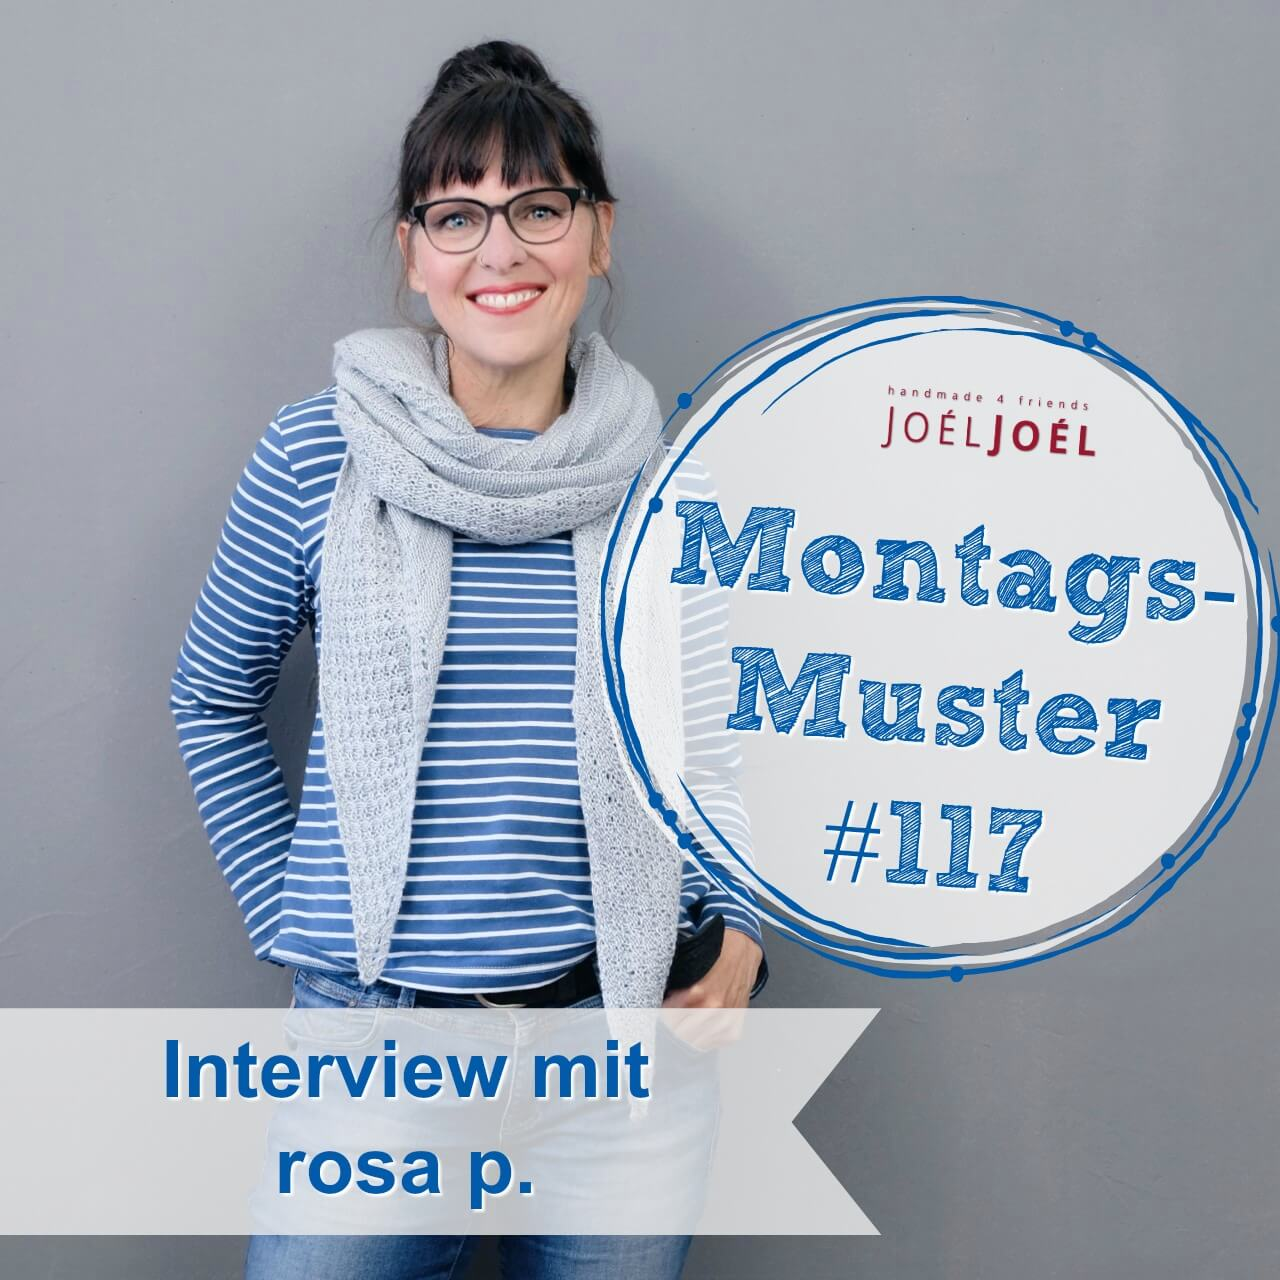 Montagsmuster, stricken, Interview, Strickanleitung, Wolle, rosa p.